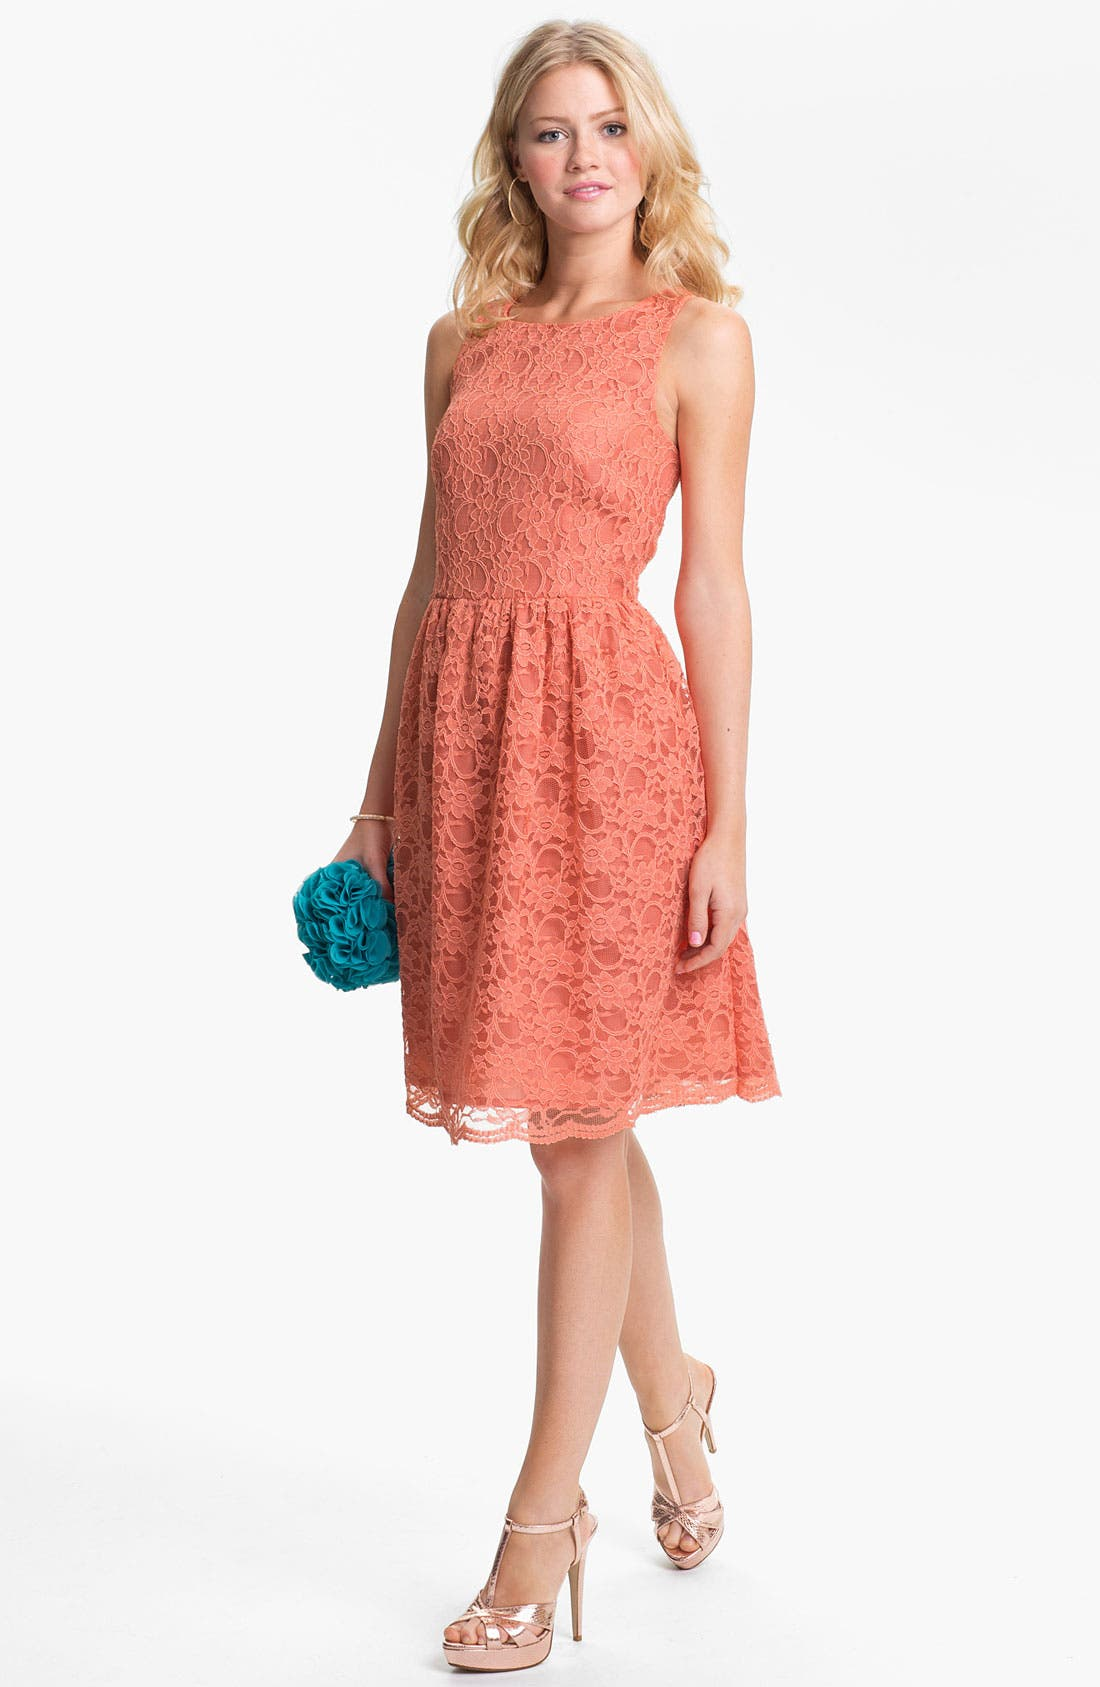 Alternate Image 1 Selected - Calvin Klein Sleeveless Lace Fit & Flare Dress